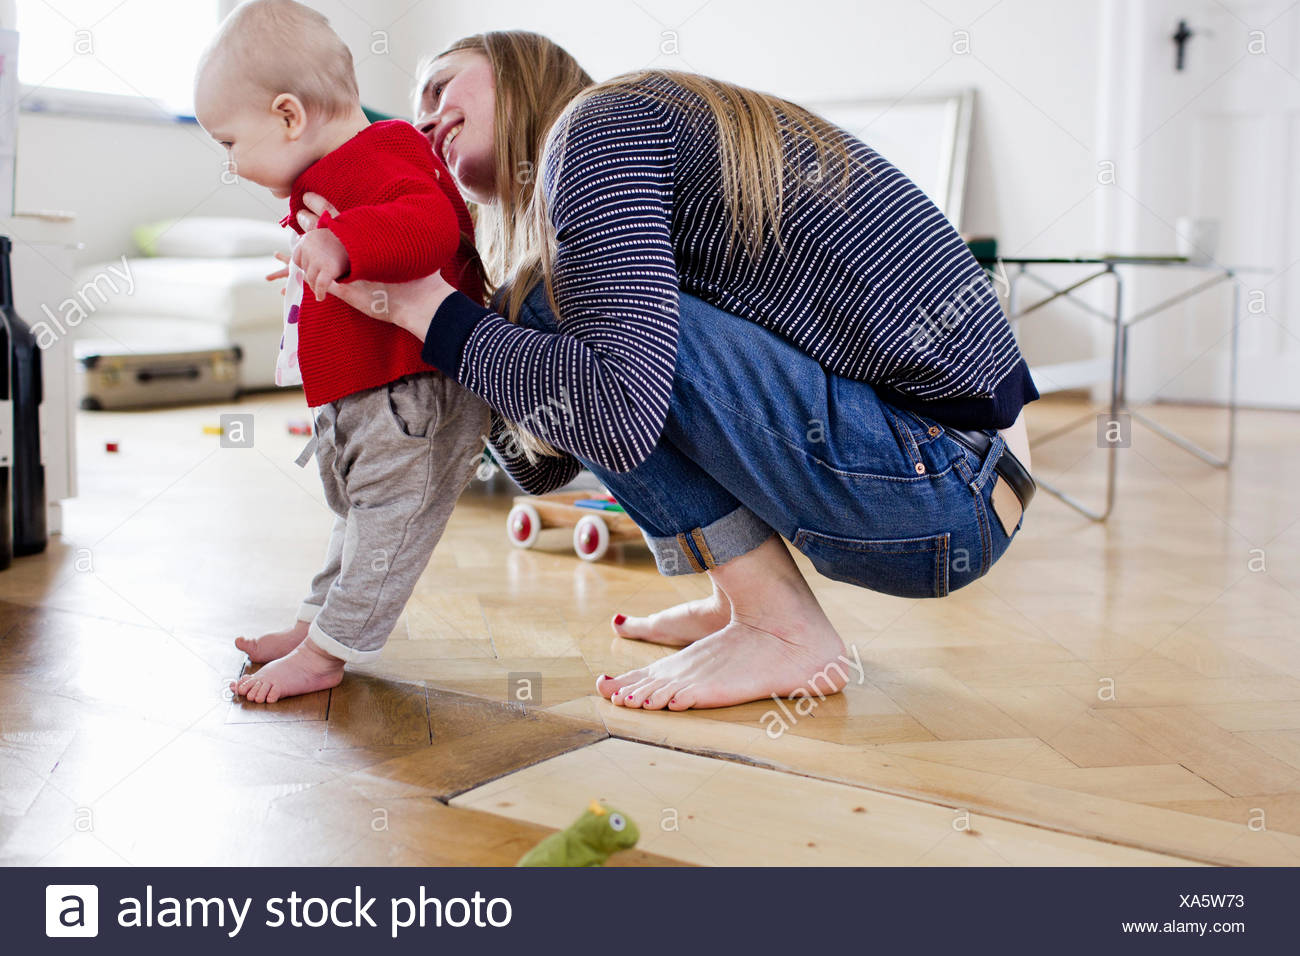 Mid adult woman holding baby daughter to take first steps - Stock Image